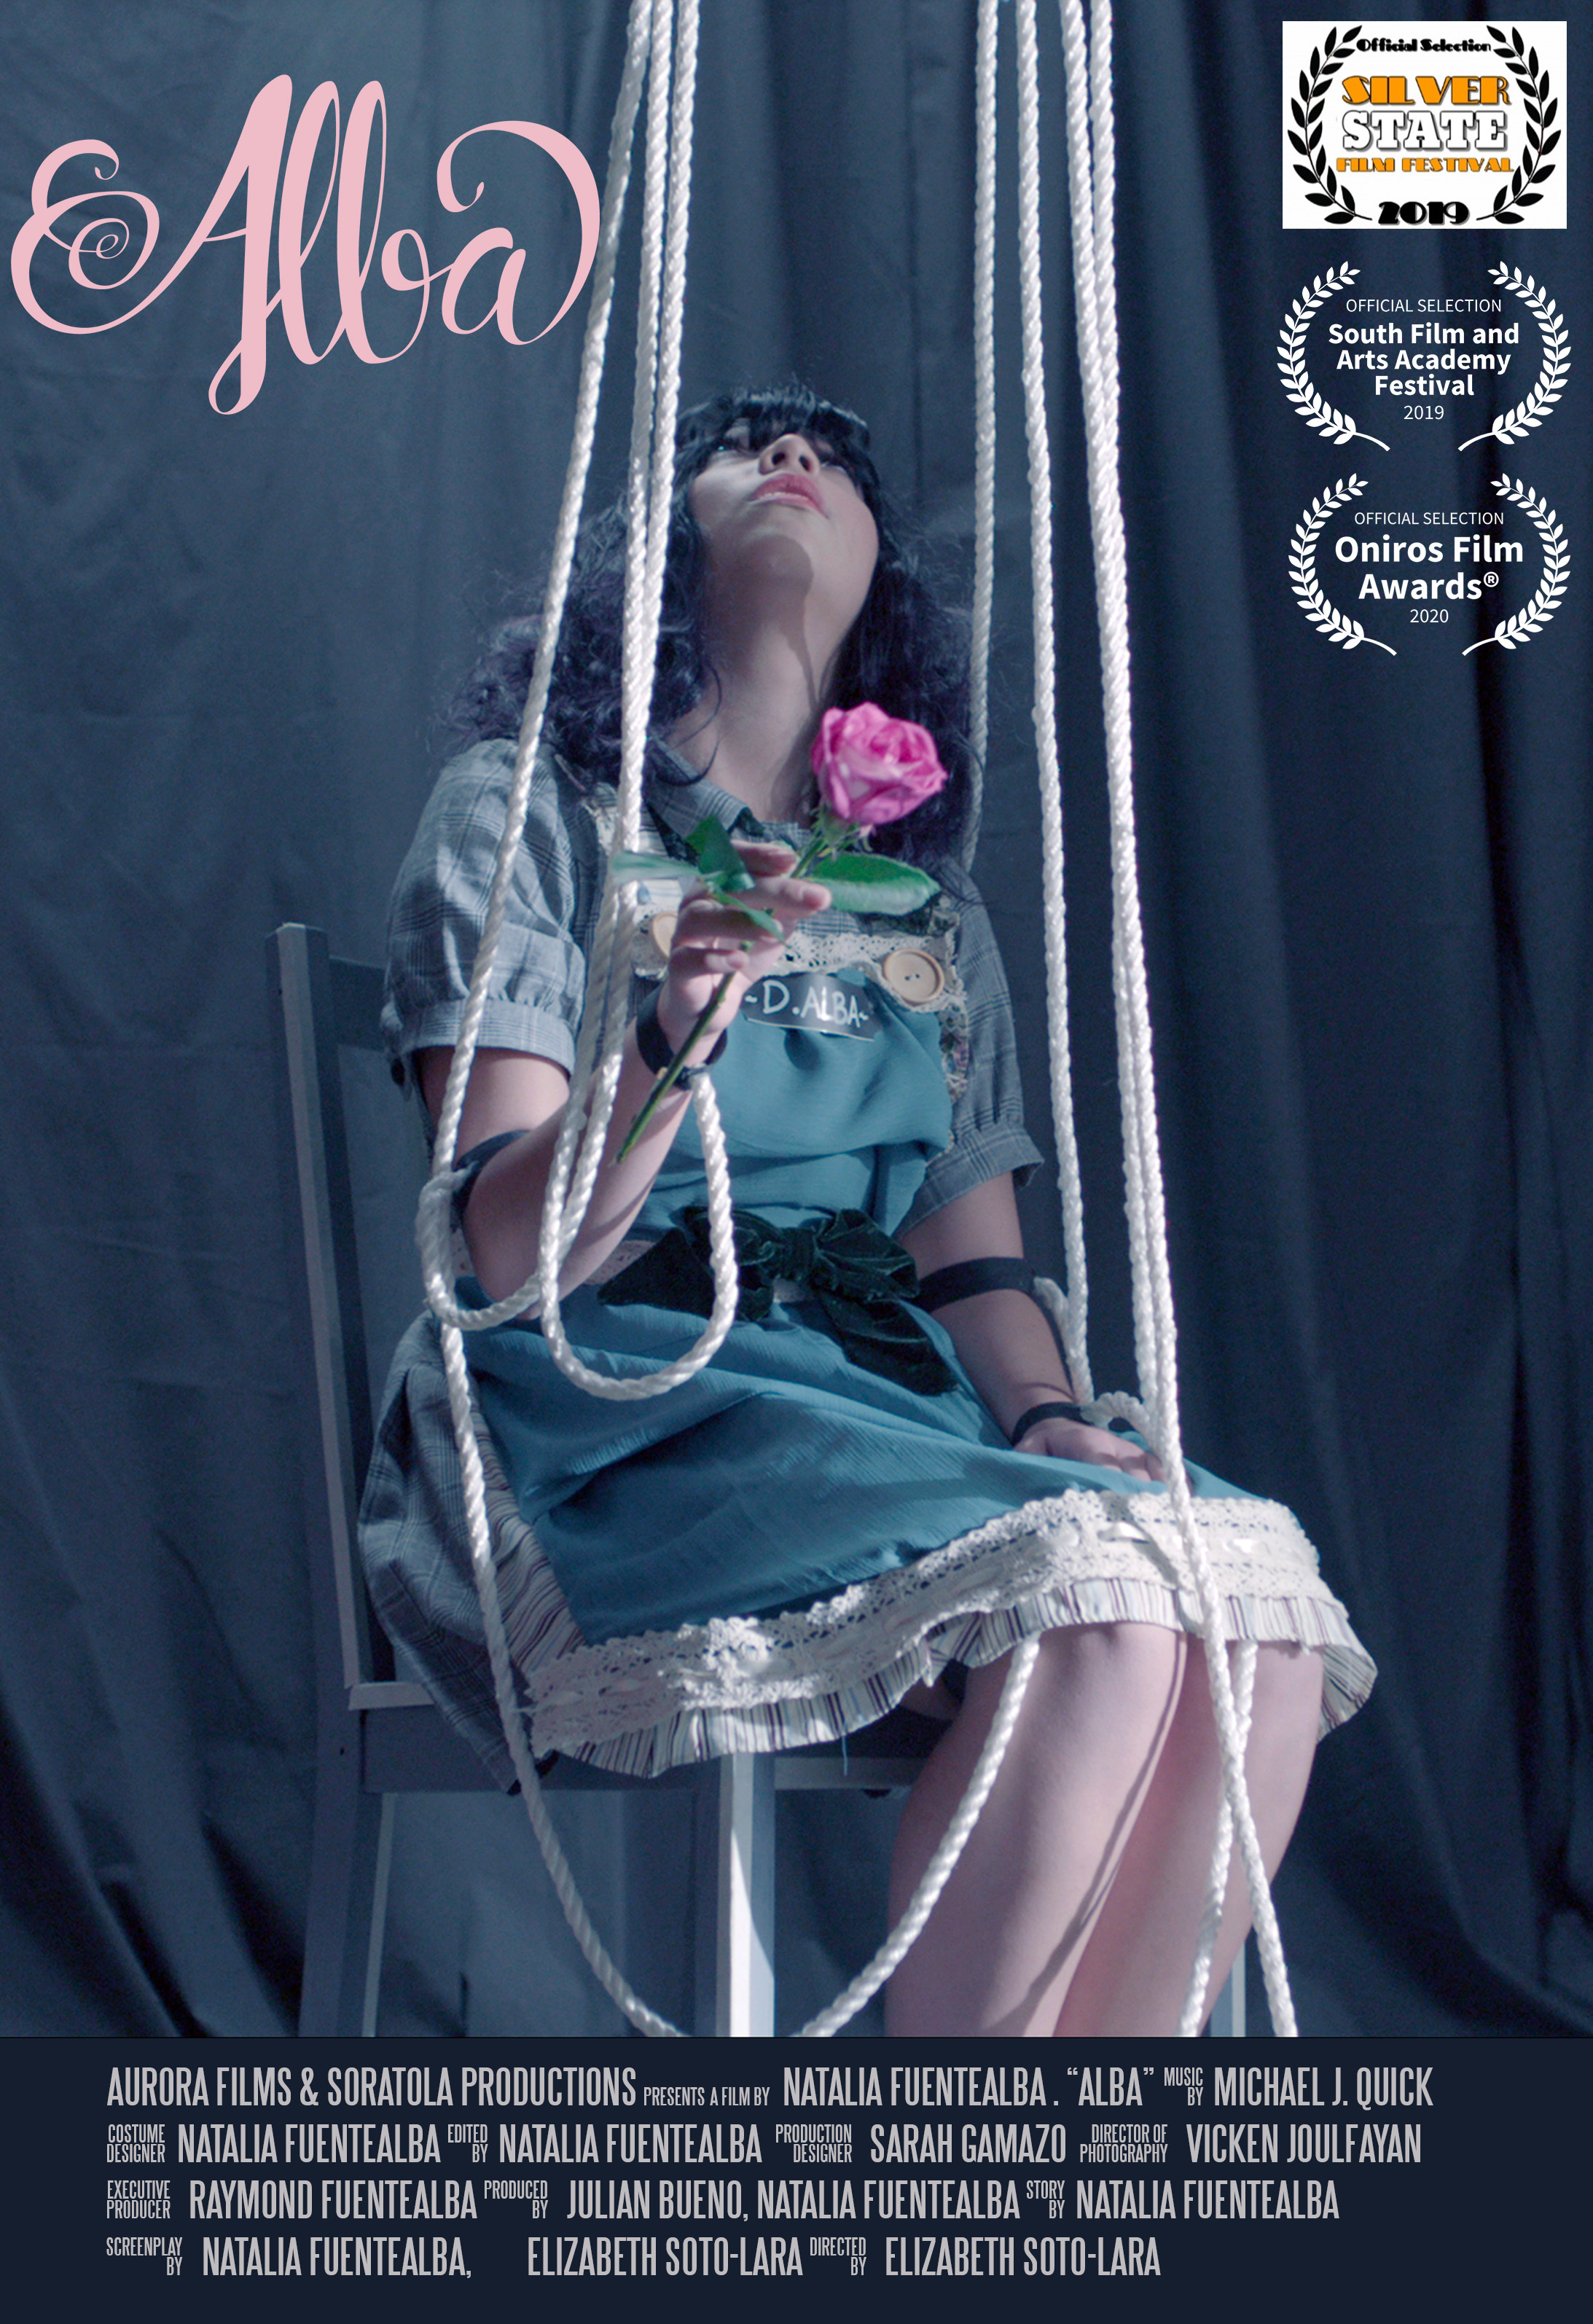 ALBA (2019) - (Short Film/Cortometraje)Credit: Director/Co-Writer.Genre: Experimental/FantasySynopsis:D. Alba, a frustrated baker who does not enjoy fulfilling her family expectations over her own, fights to set free her true self.Country: USA-Chile